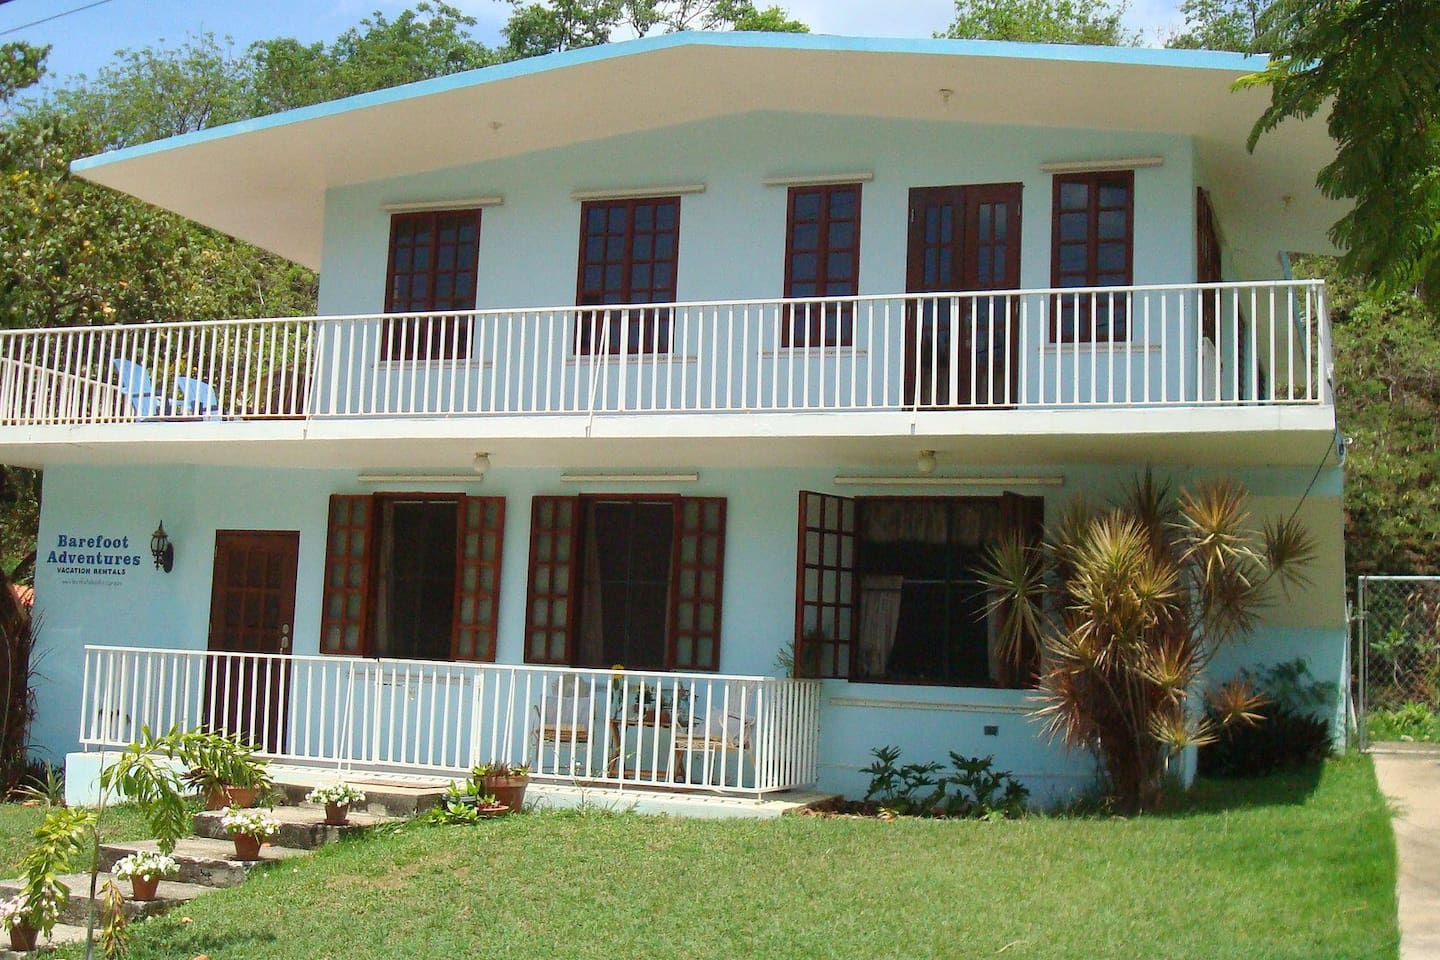 View of the Barefoot Guest House in a beautiful neighborhood close to the beach